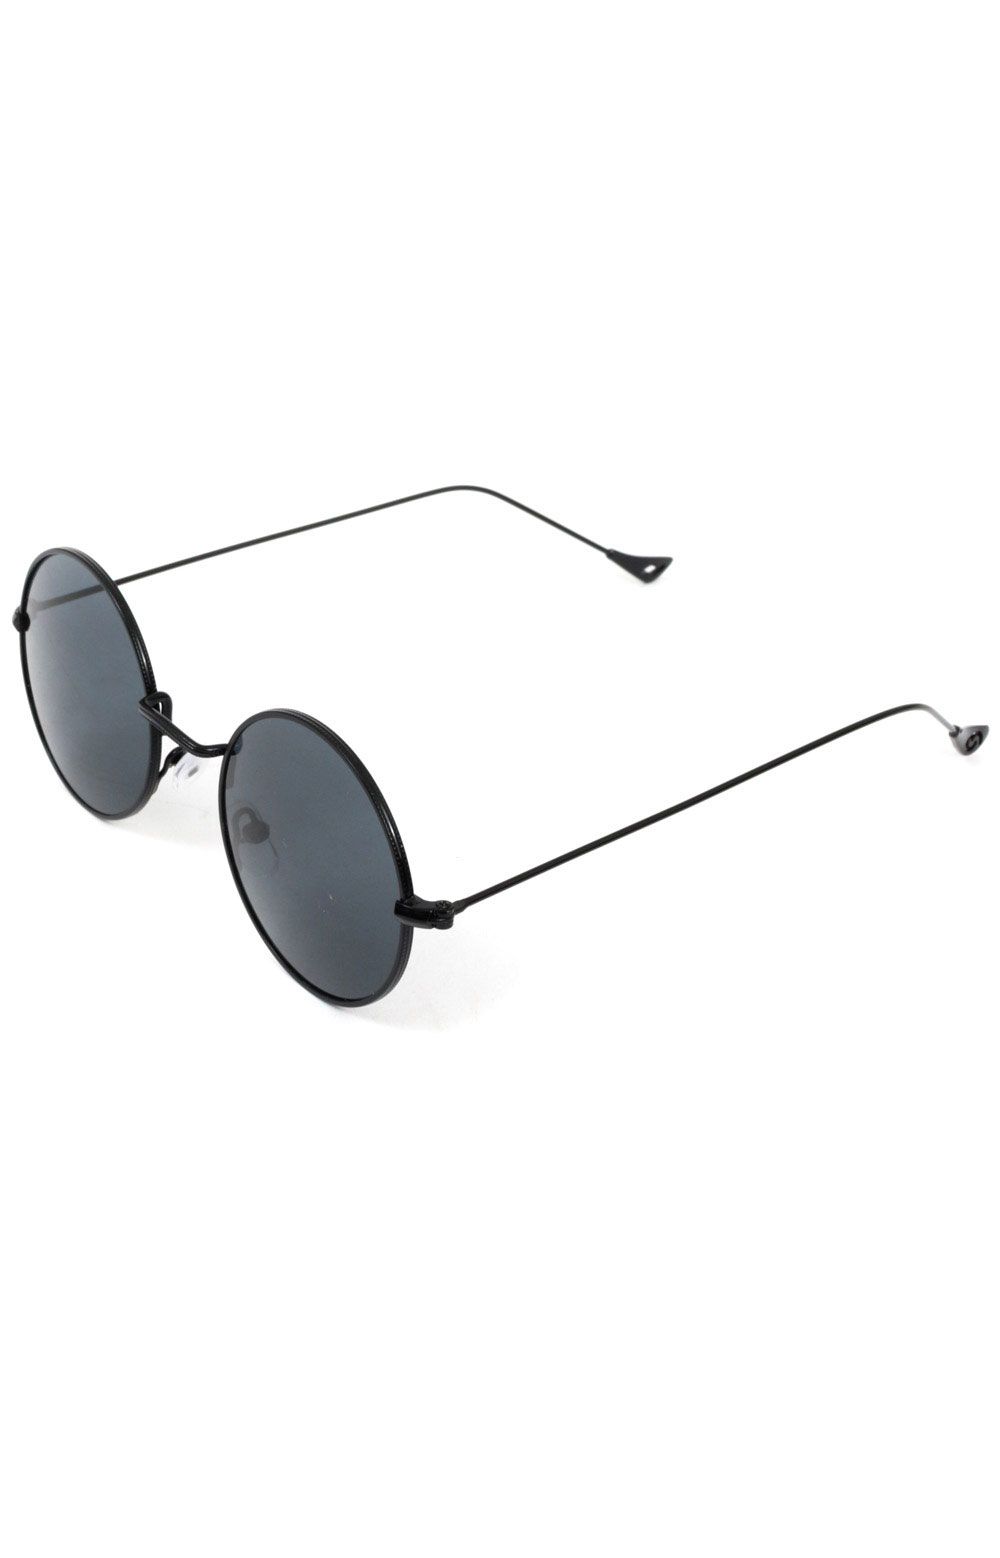 Mayfair Sunglasses - Black